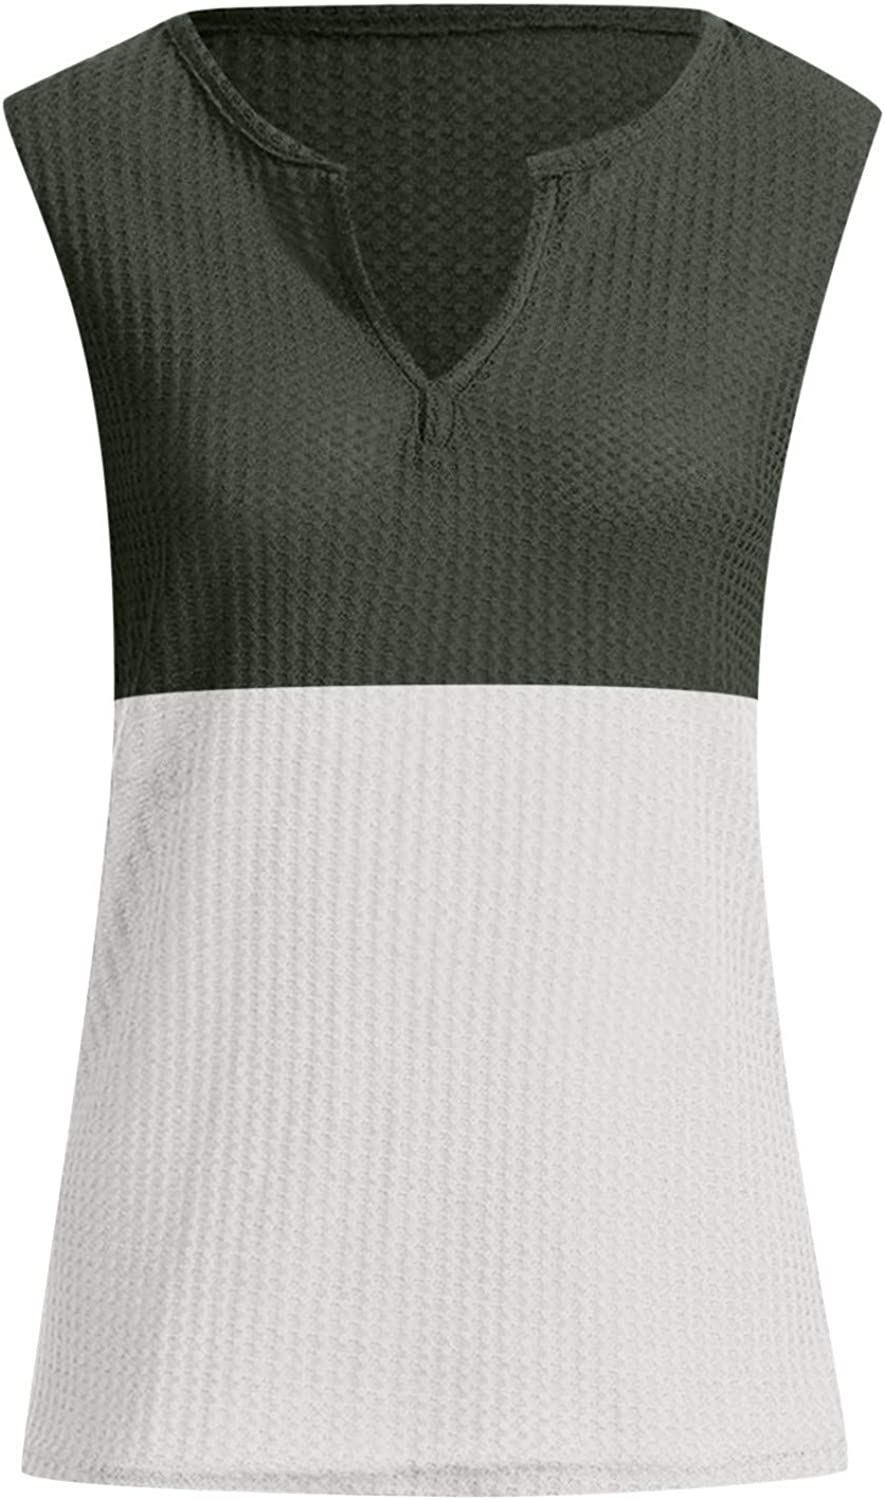 Summer Tops for Women Plus Size,Womens Tanmk Tops Casual Sleeveless V Neck Button Up Waffle Knit Tunic Henley Shirts